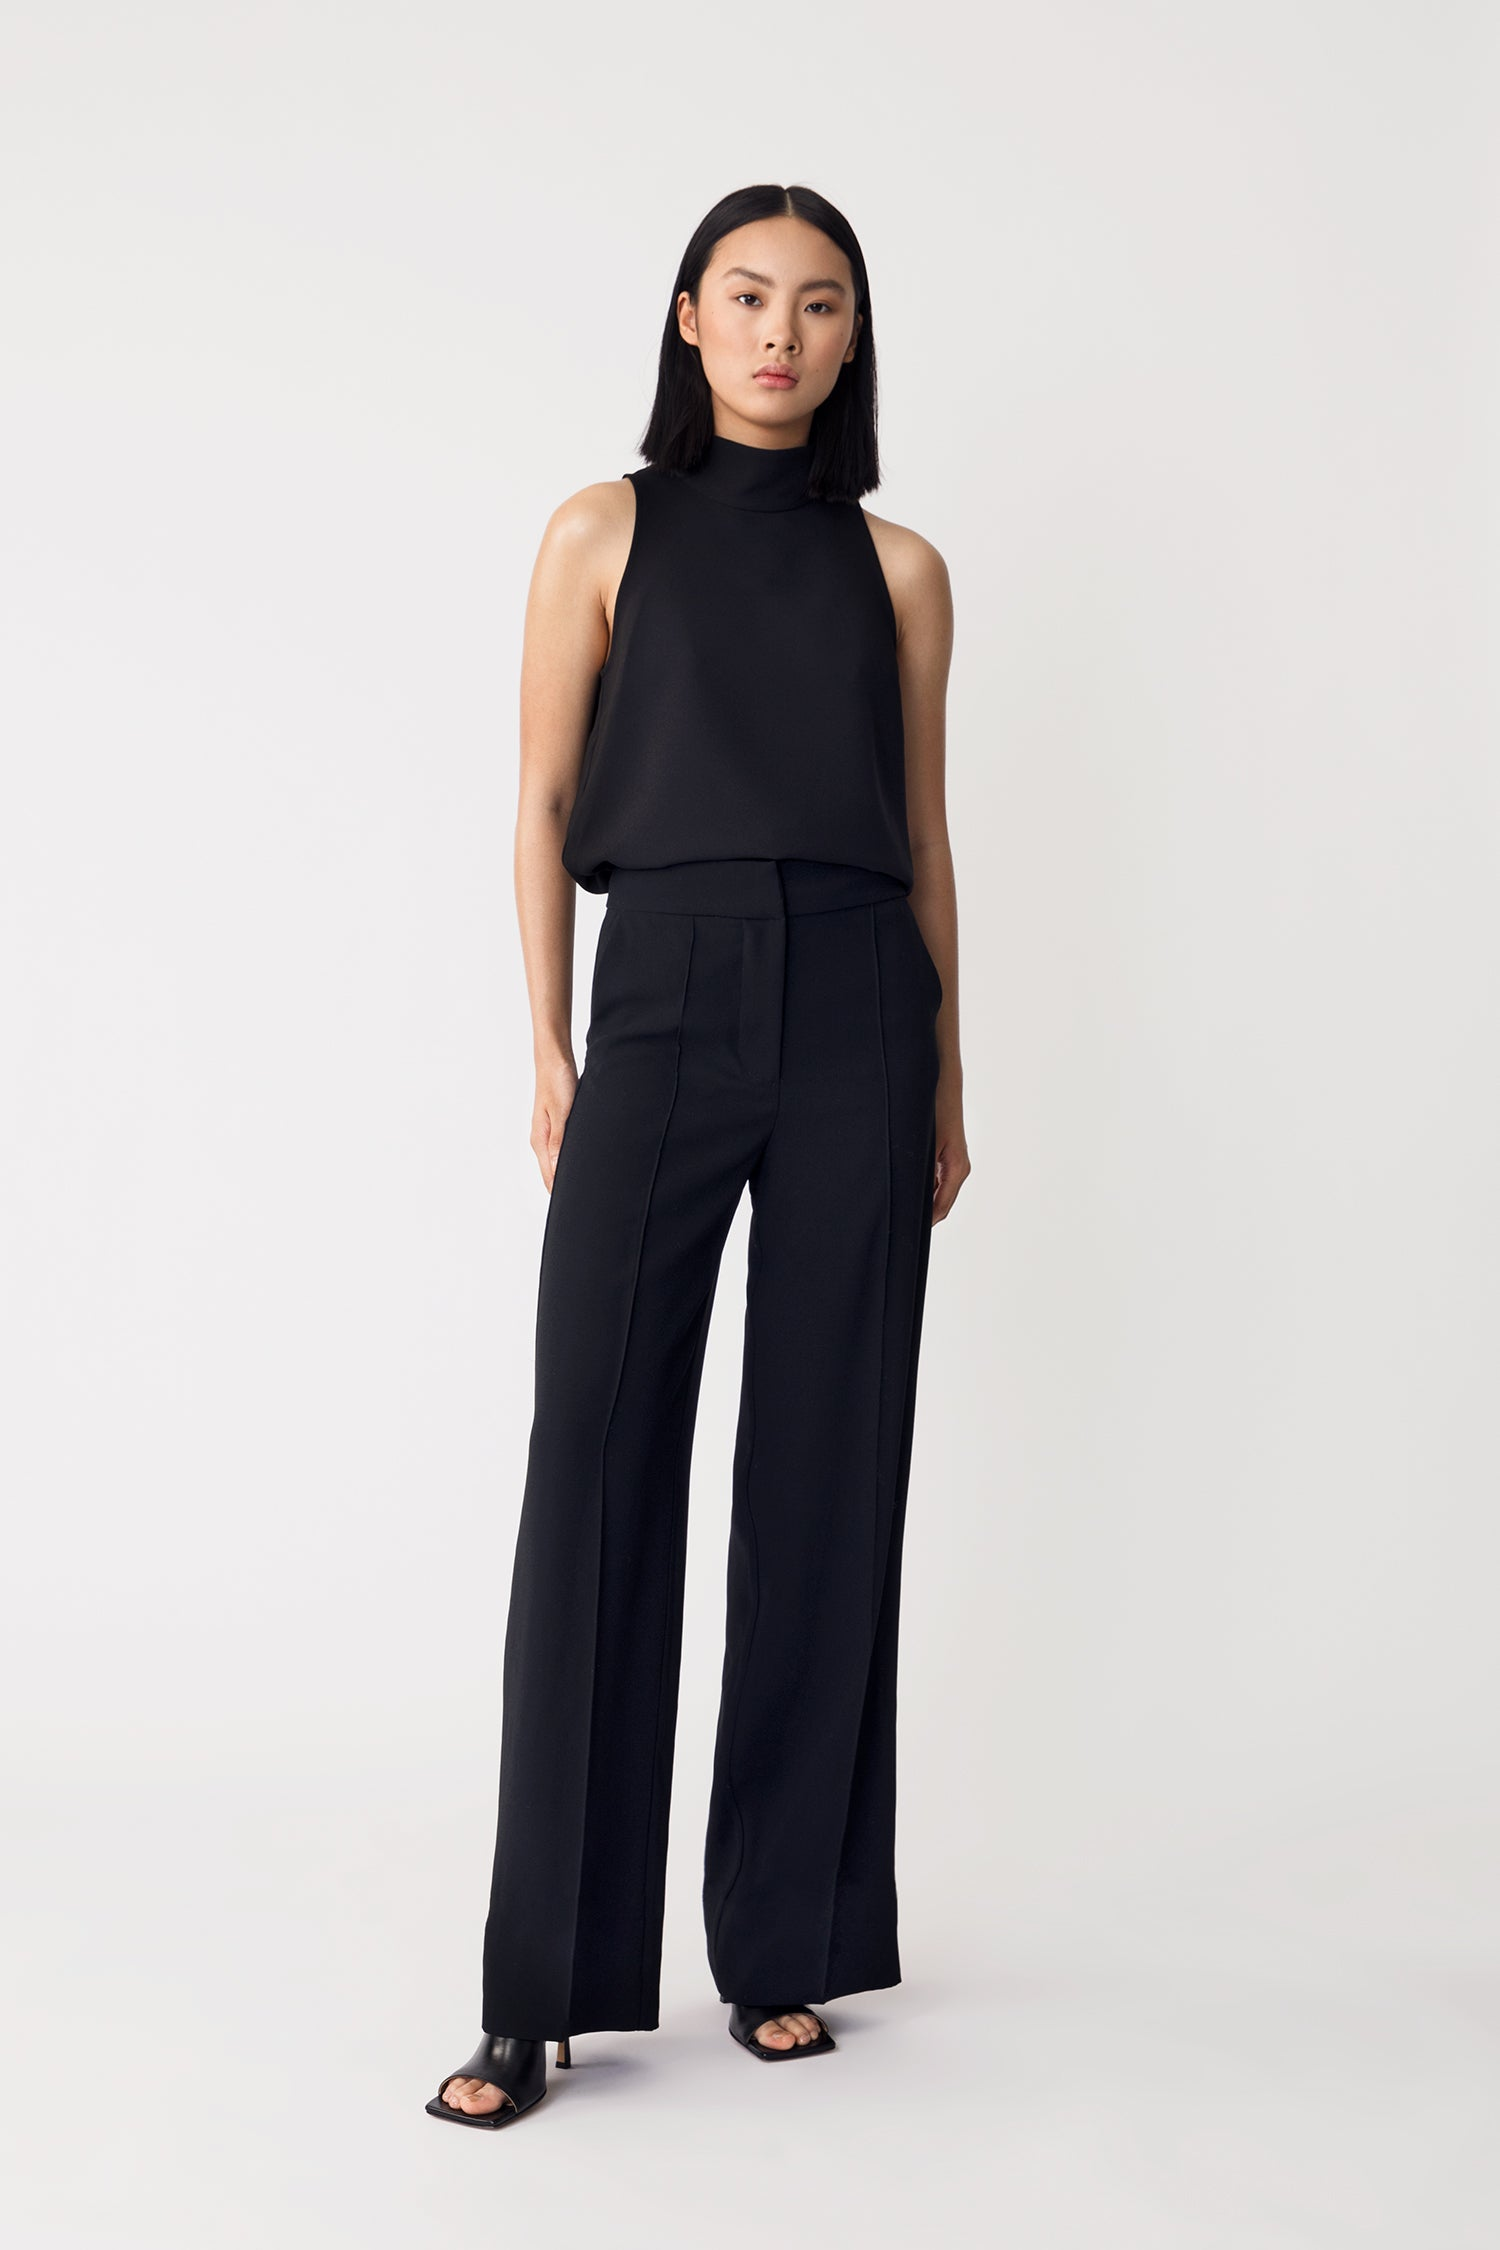 BILL TROUSERS - BLACK